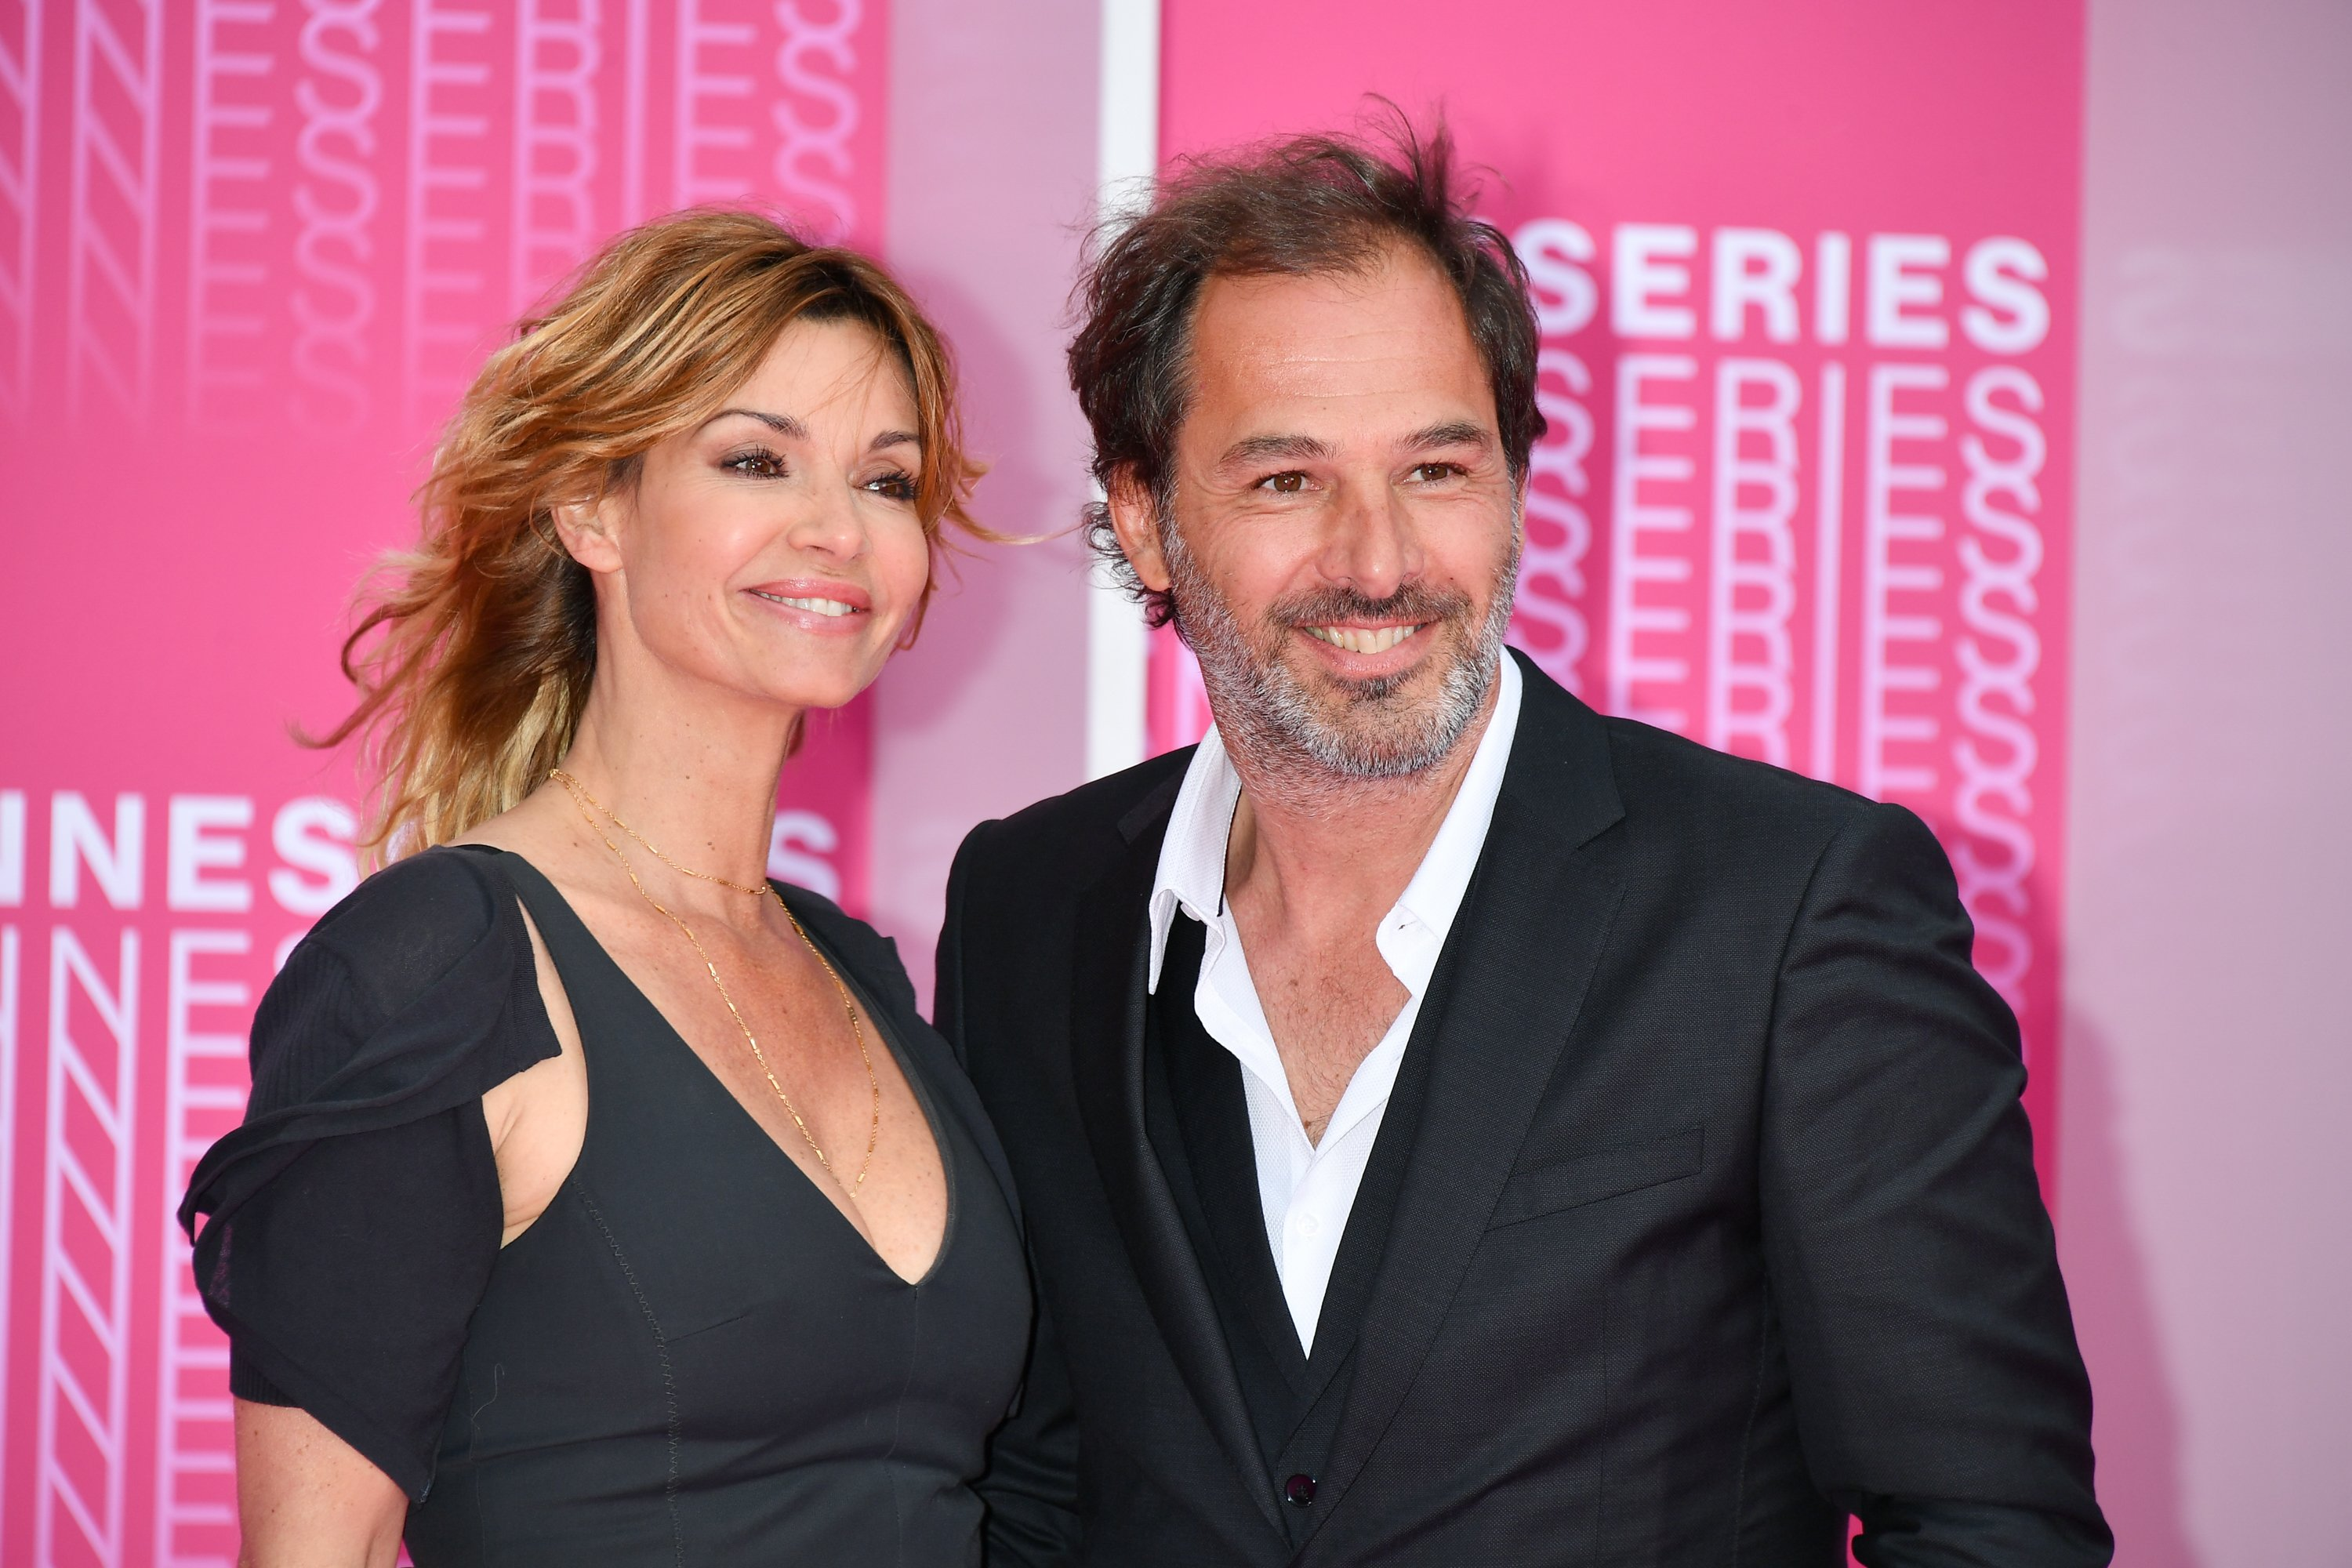 Thierry Peythieu et Ingrid Chauvin   Source: Getty Images